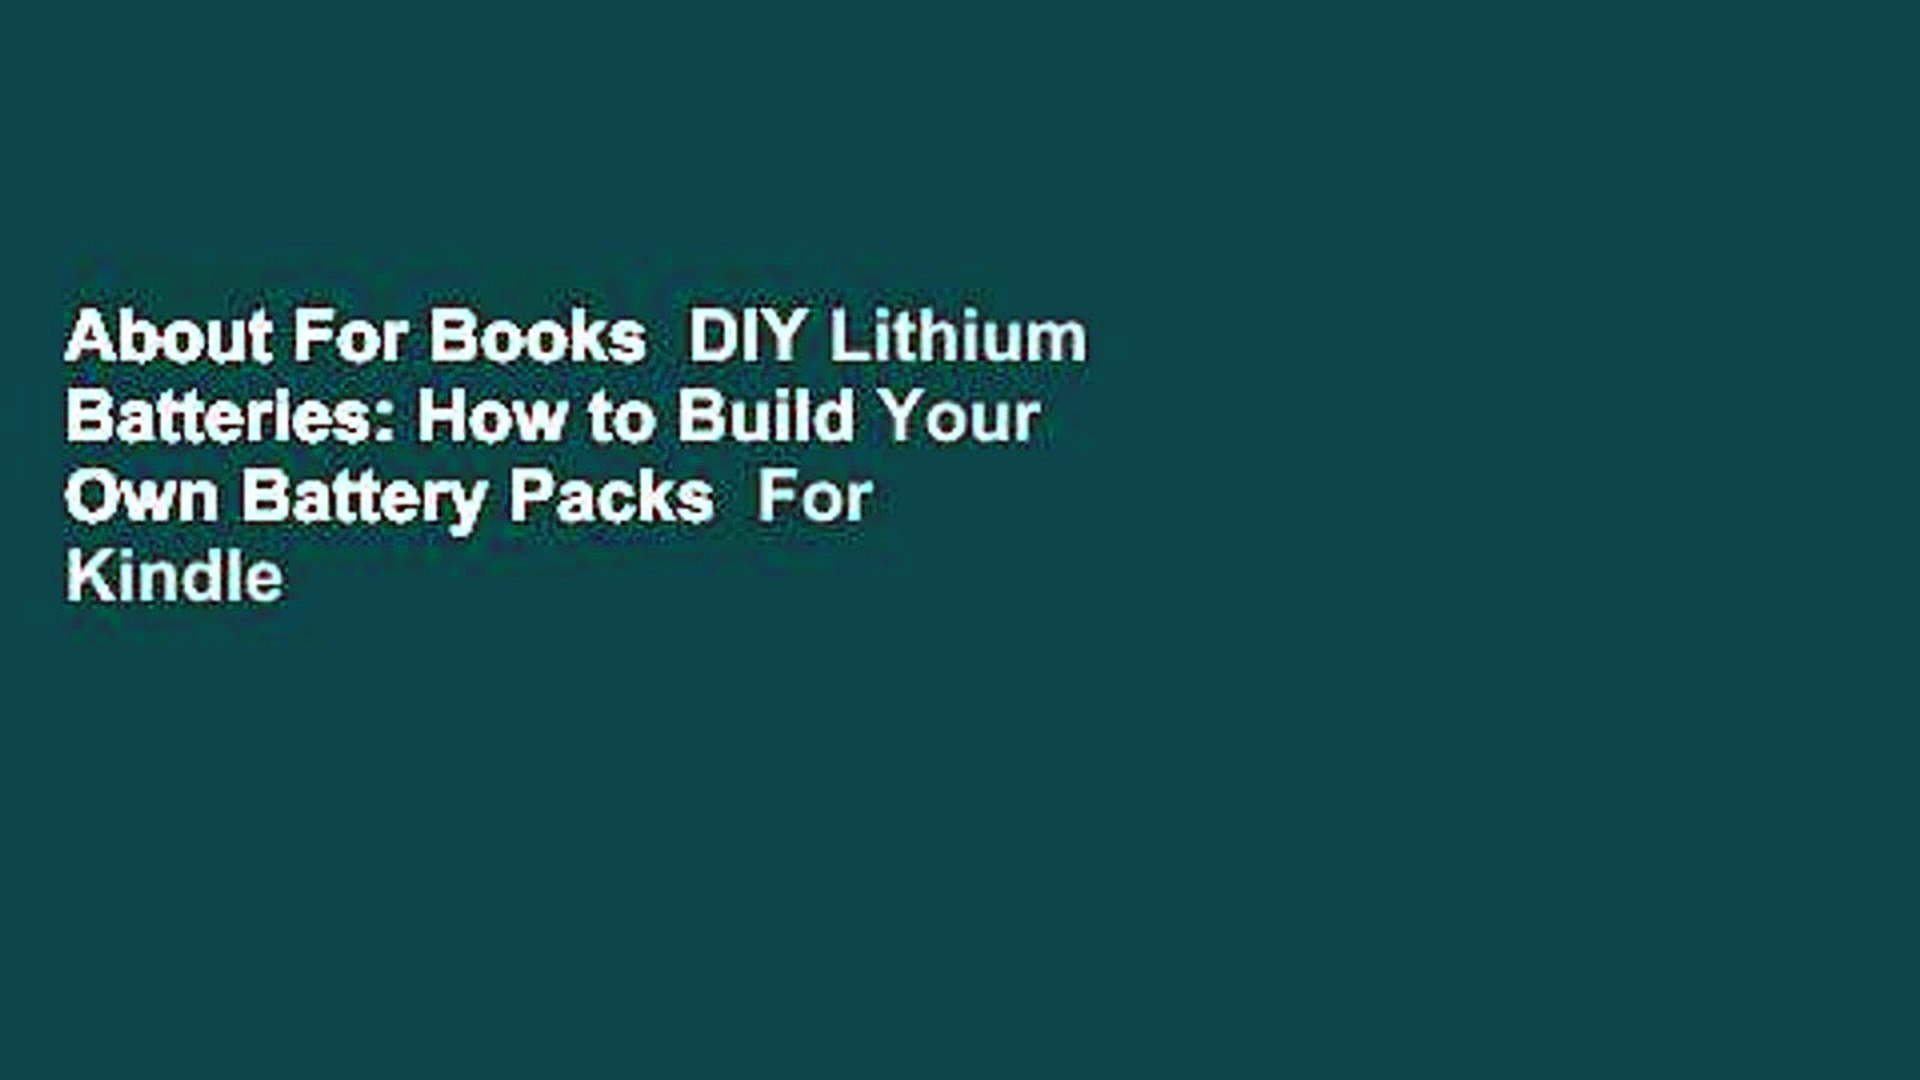 About For Books  DIY Lithium Batteries: How to Build Your Own Battery Packs  For Kindle